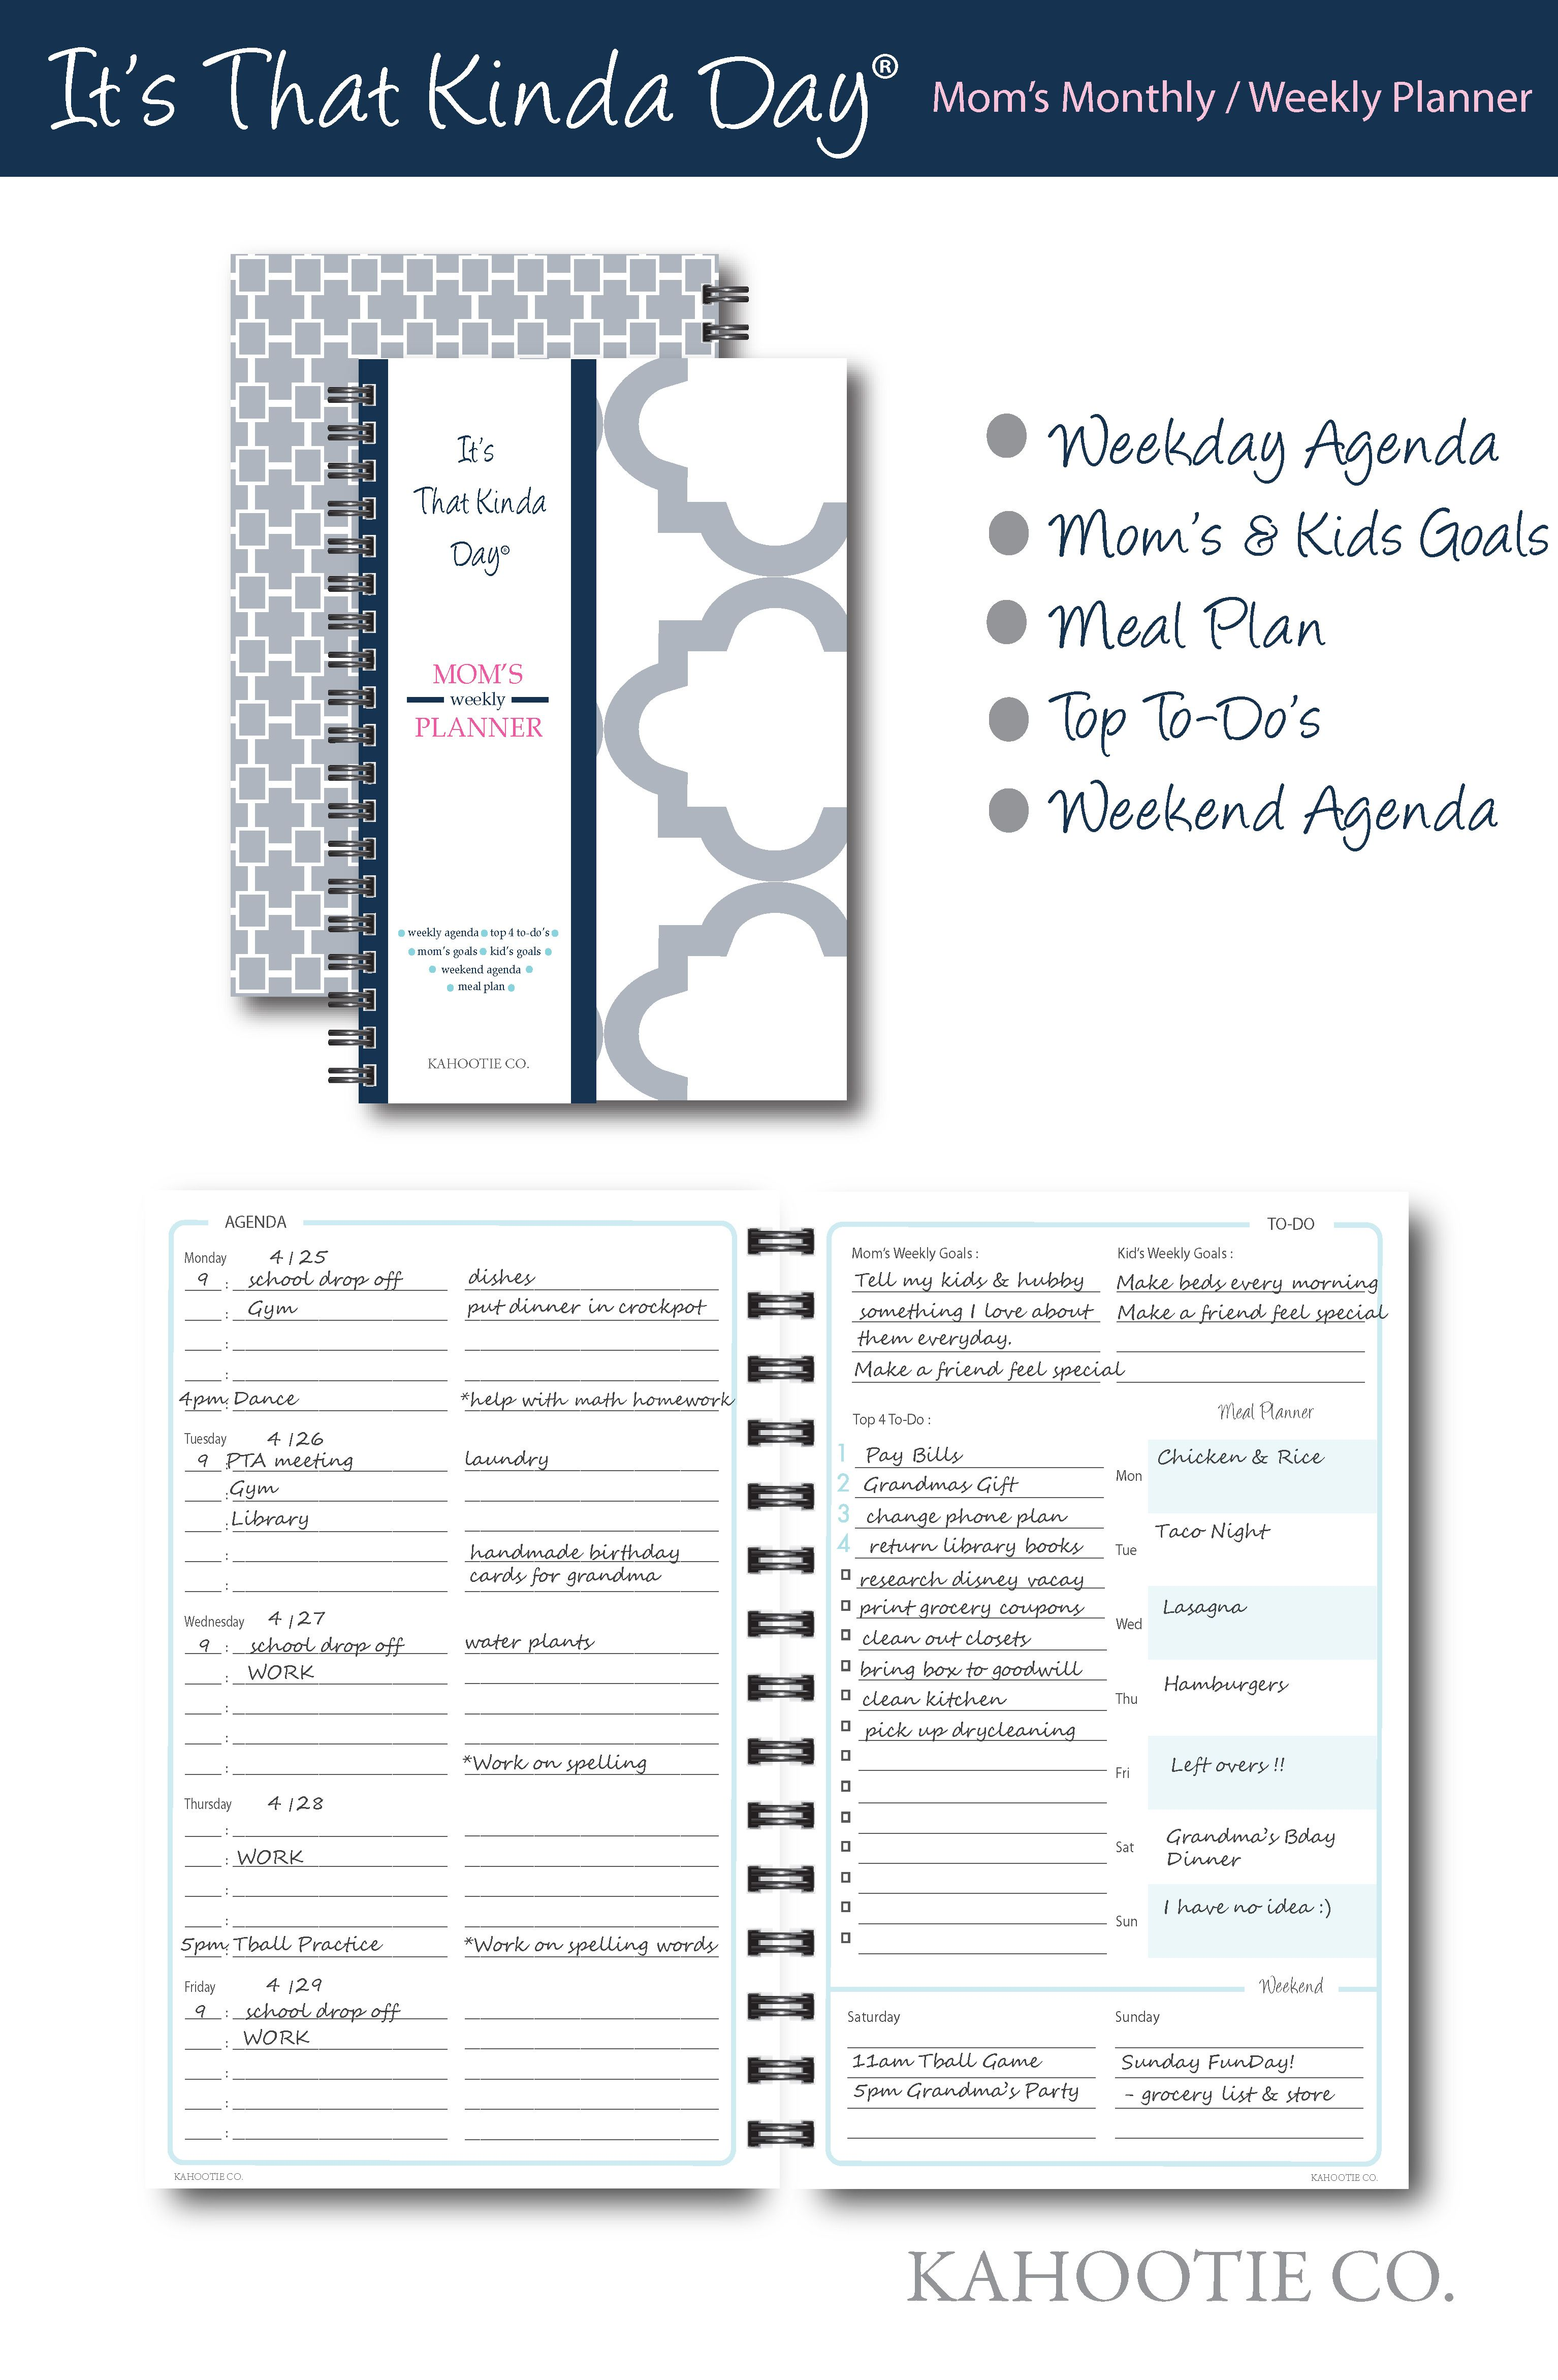 Kahootie Co It S That Kinda Day Mom S Weekly Planner 6